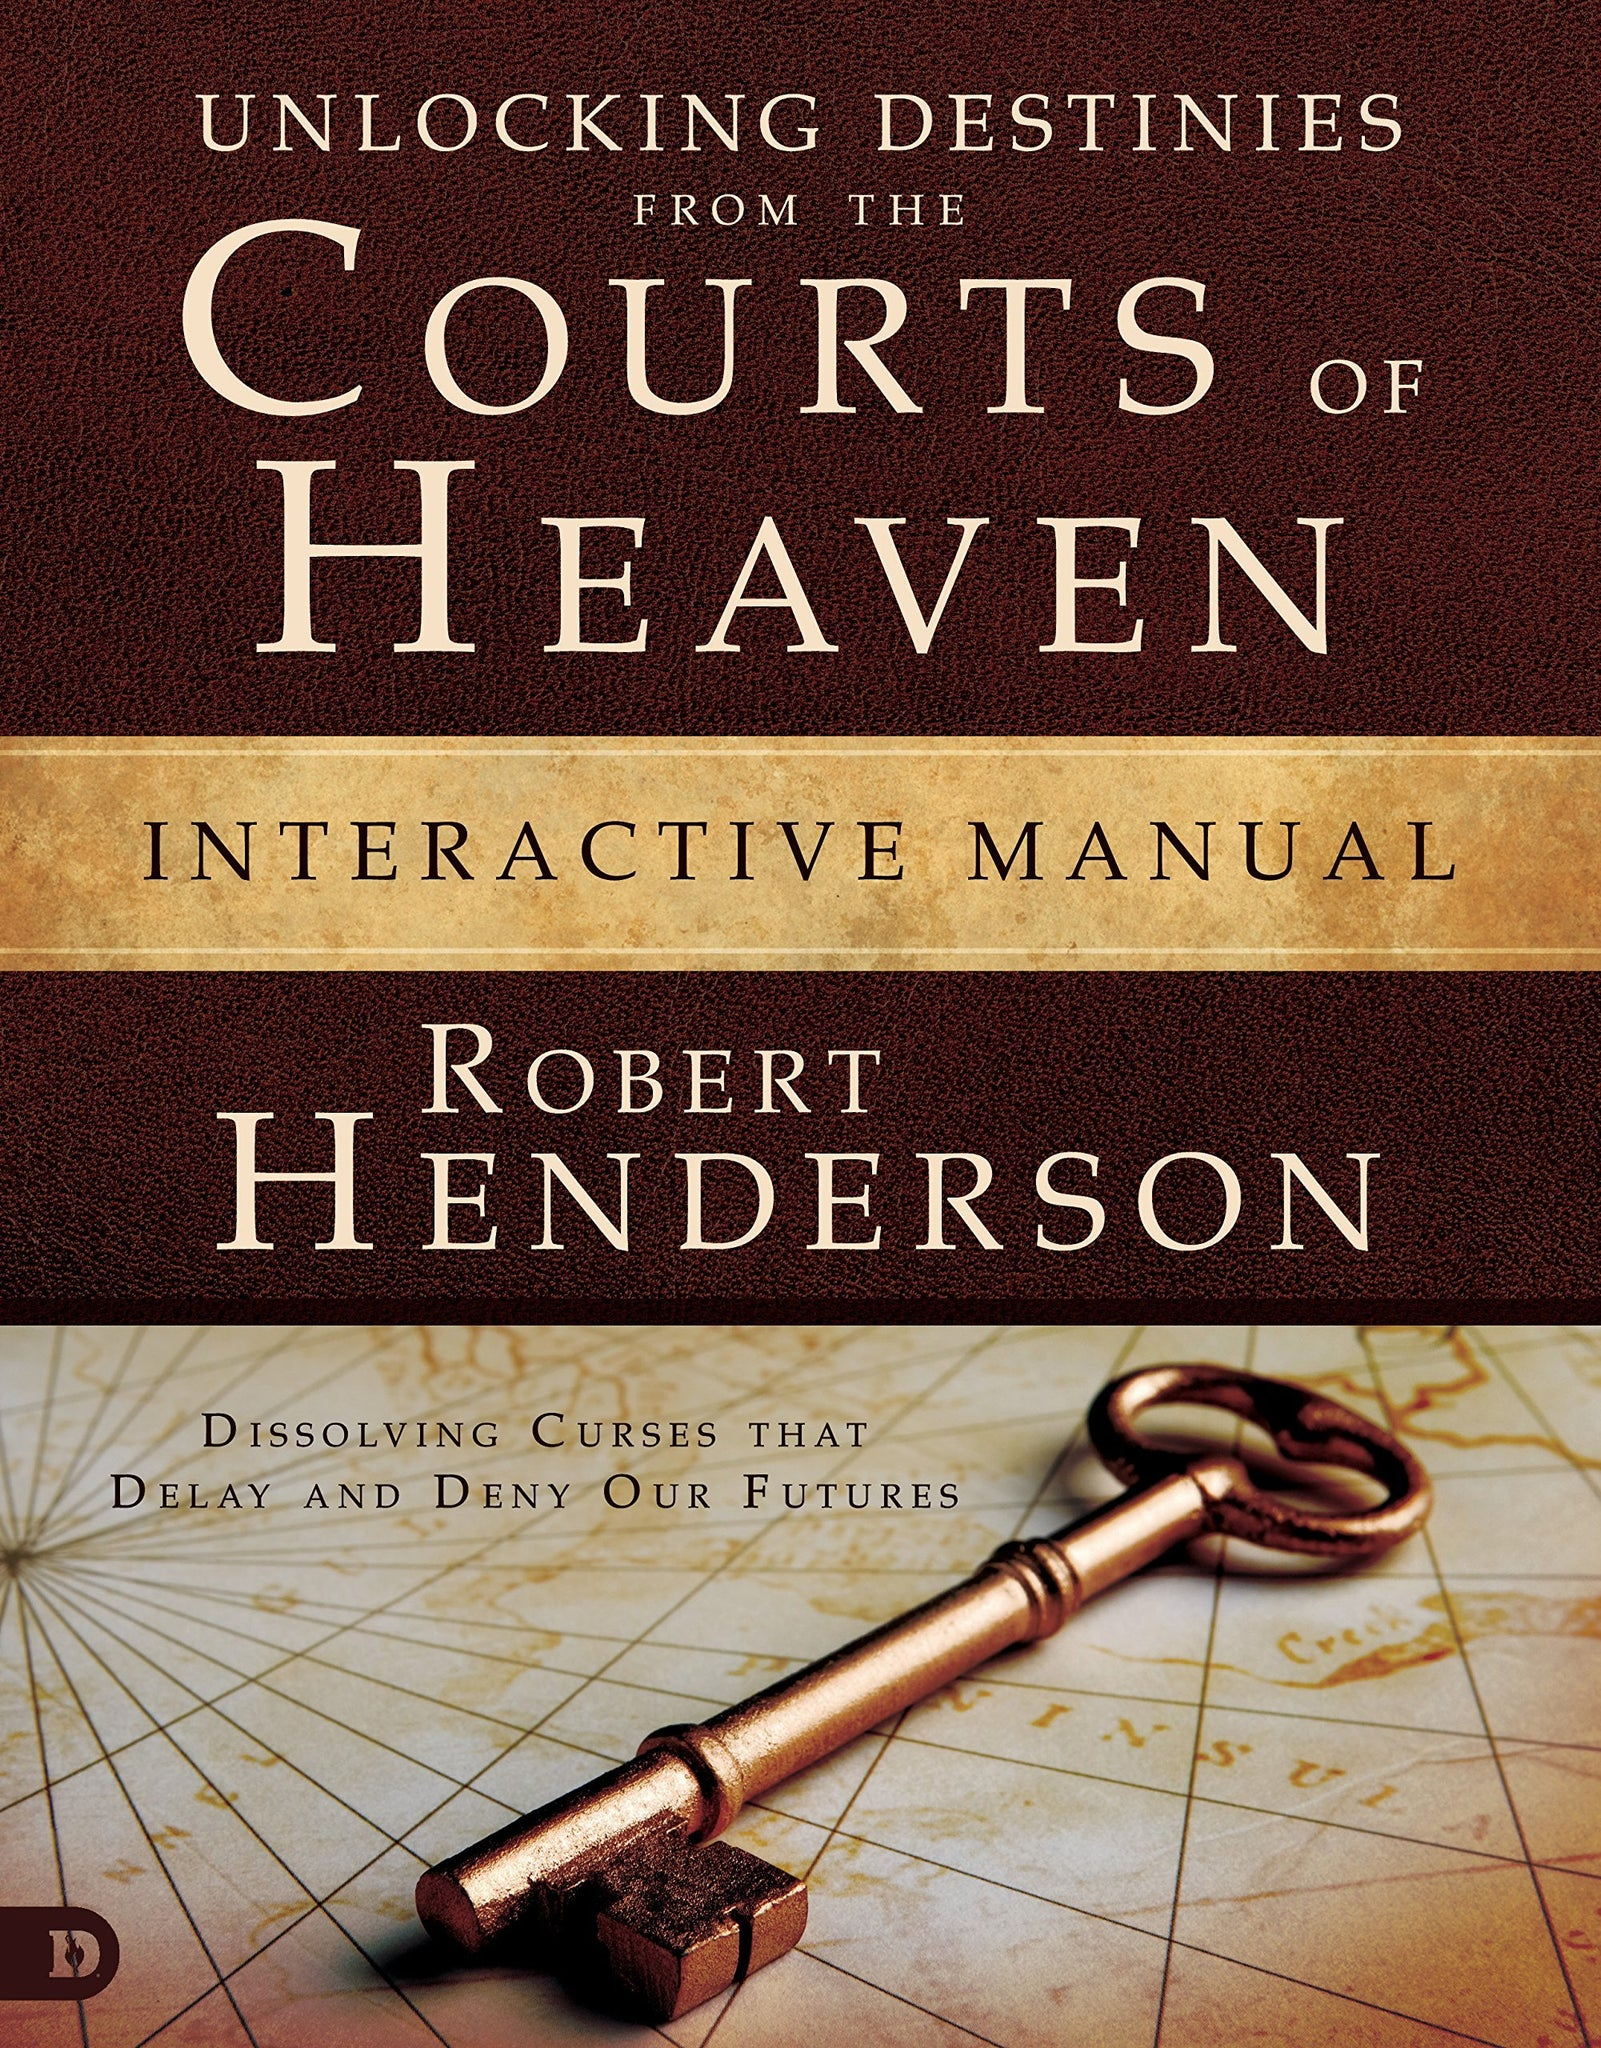 Unlocking Destinies From the Courts of Heaven Interactive Manual: Dissolving Curses That Delay and Deny Our Futures